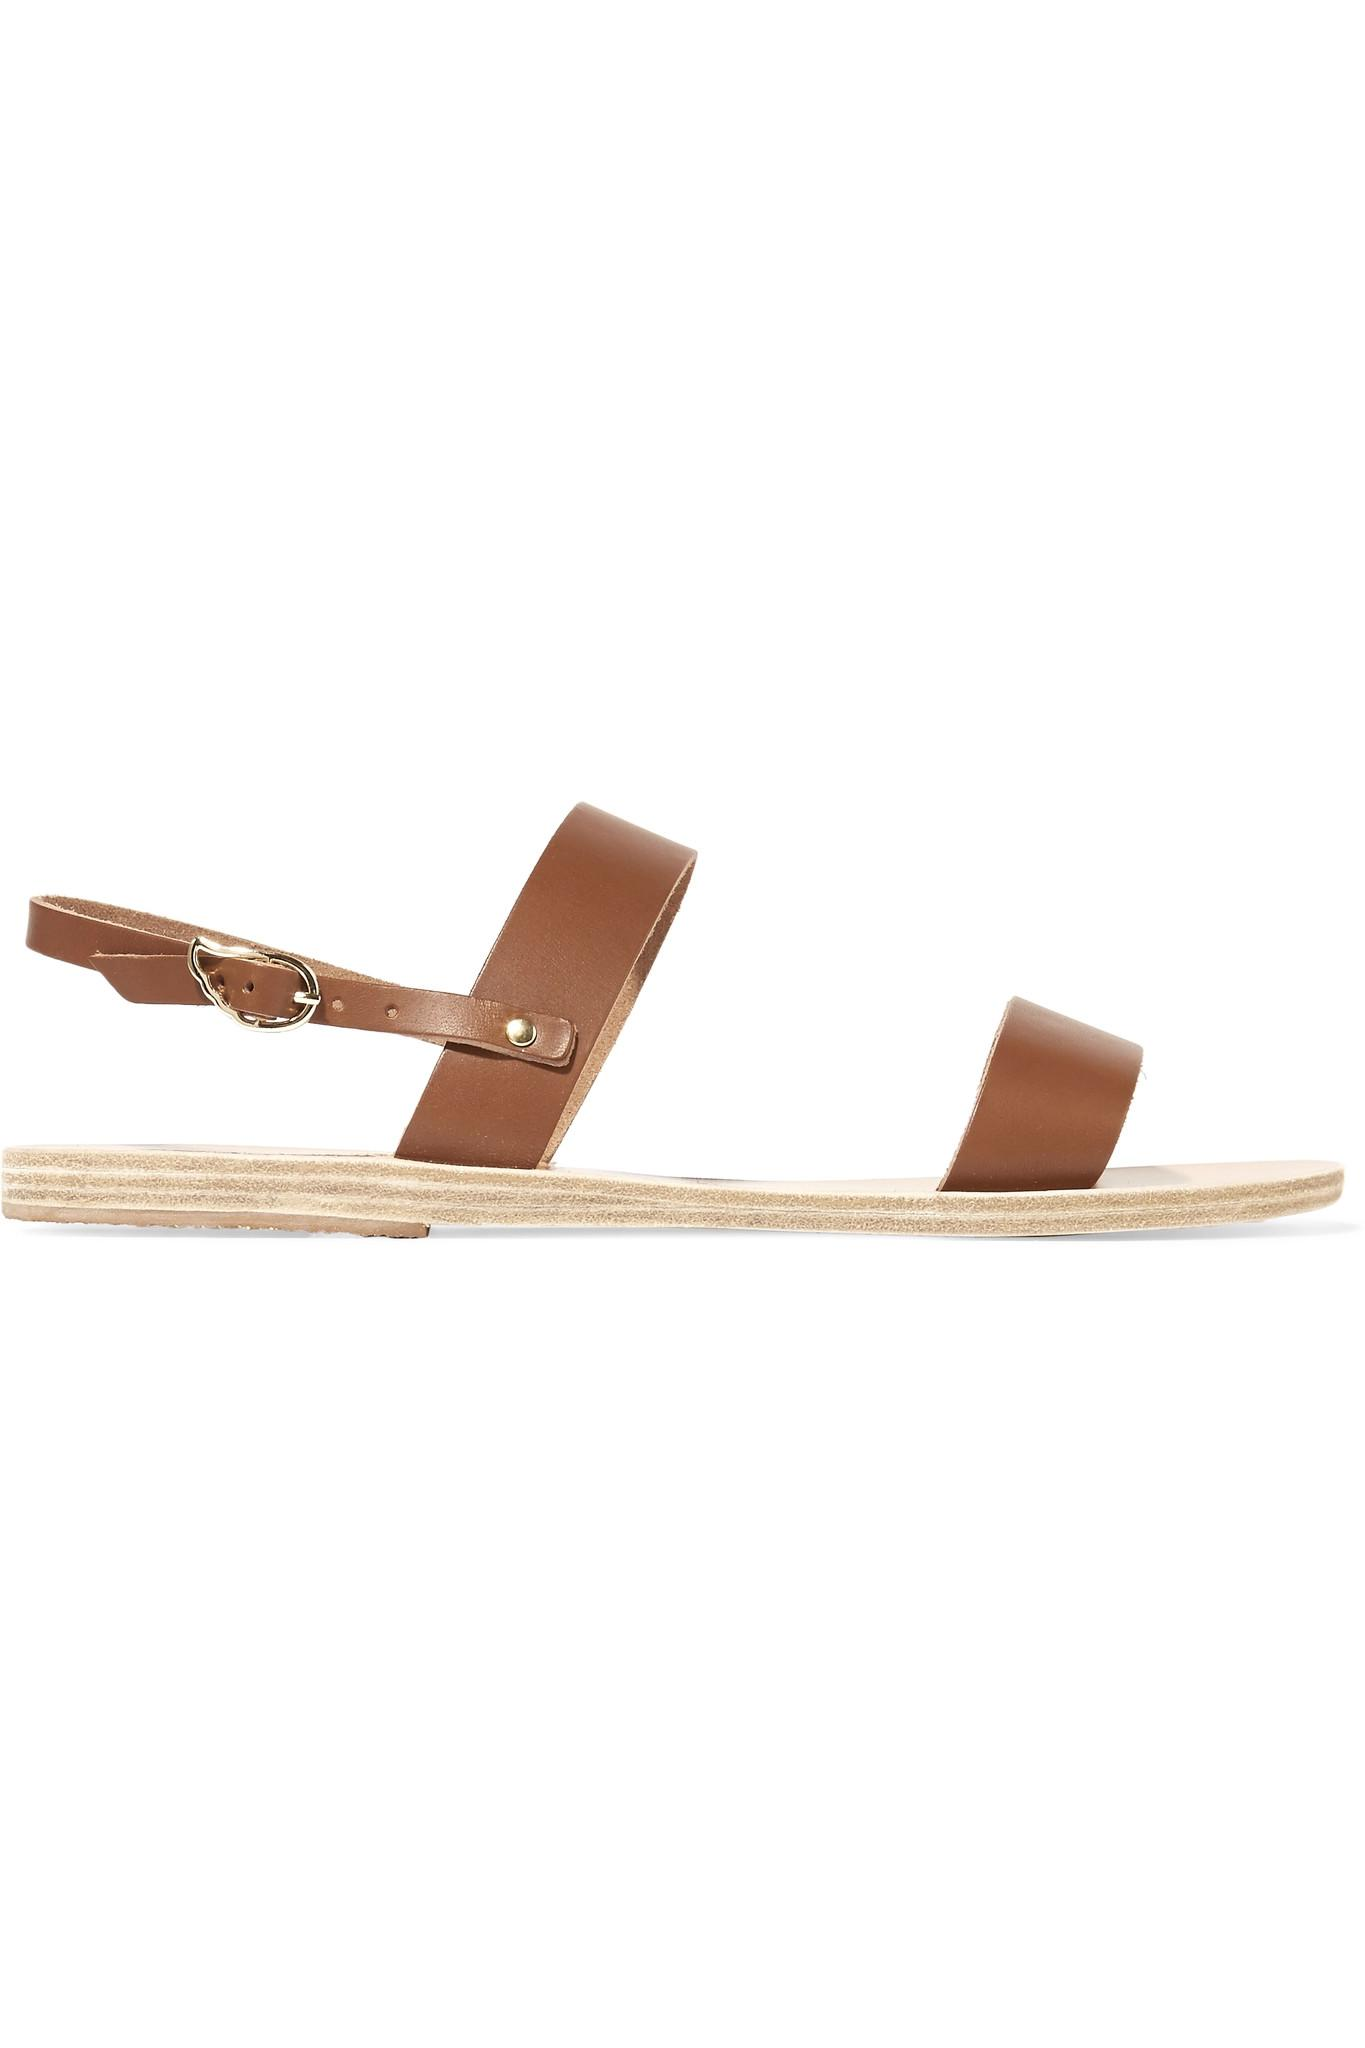 d1ba3b4153e Lyst - Ancient Greek Sandals Clio Leather Sandals in Brown